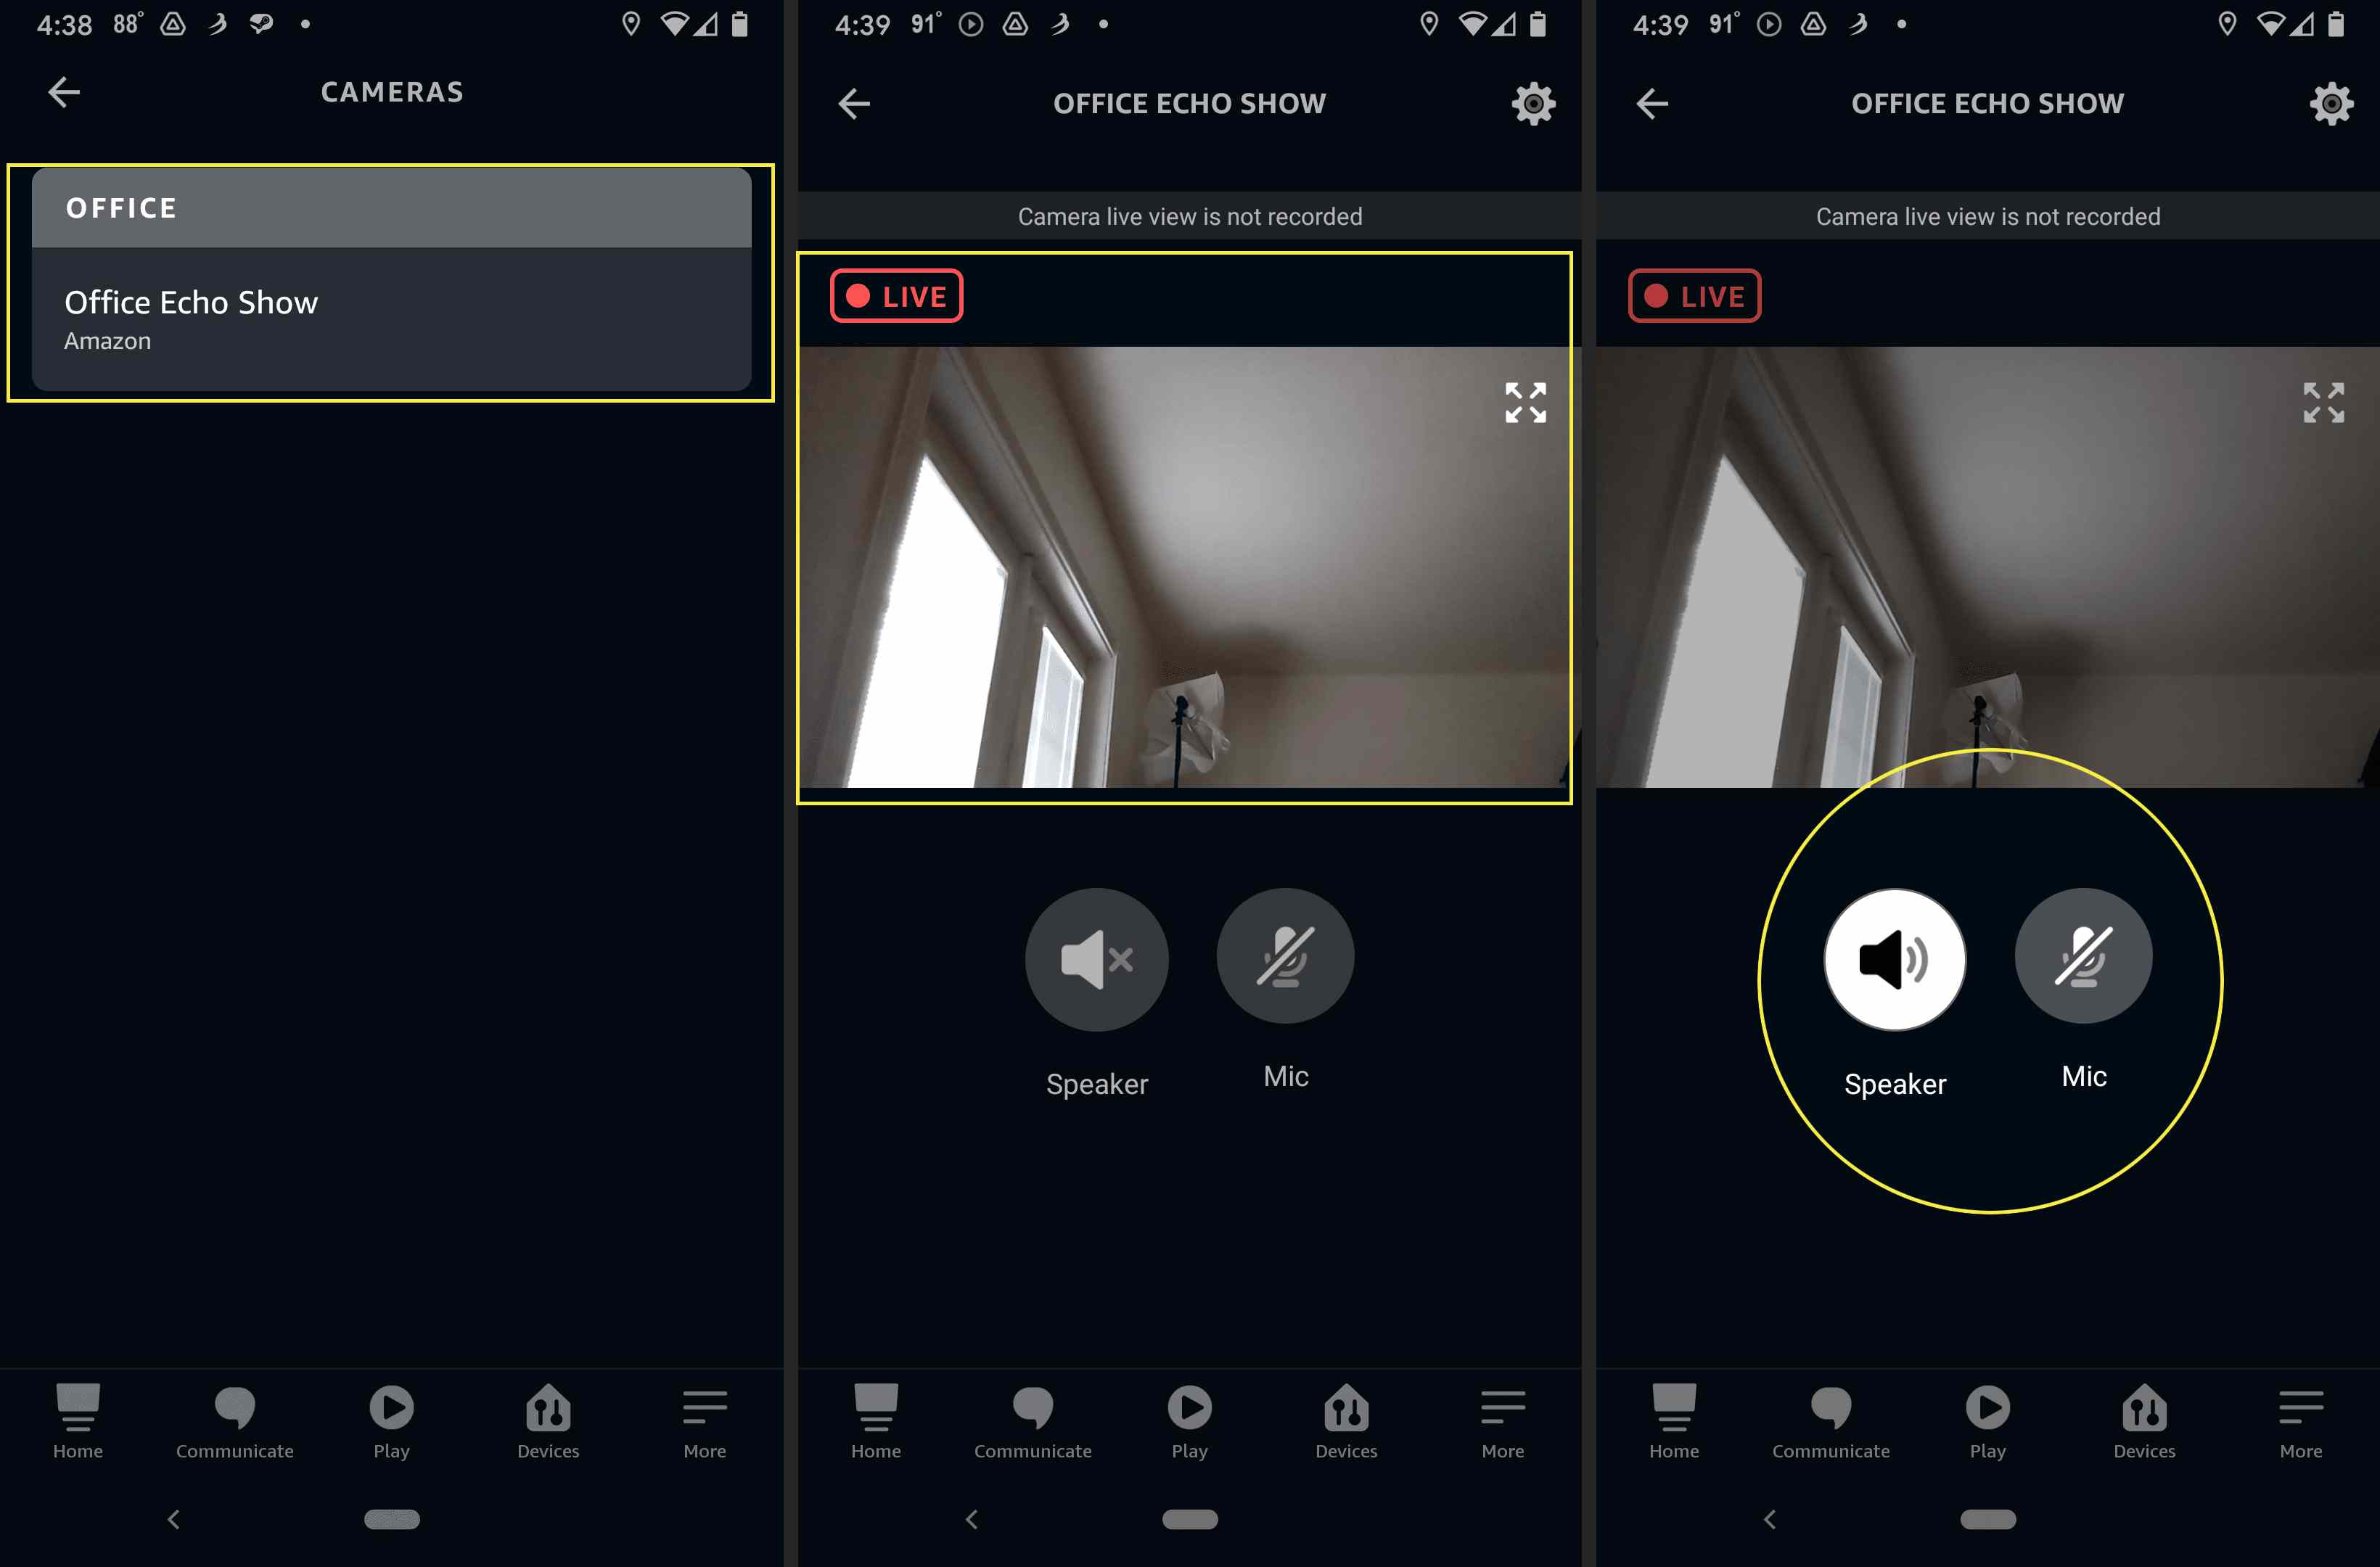 Alexa app home monitoring live view with Echo selected, live view shown, and Speaker/Mic highlighted